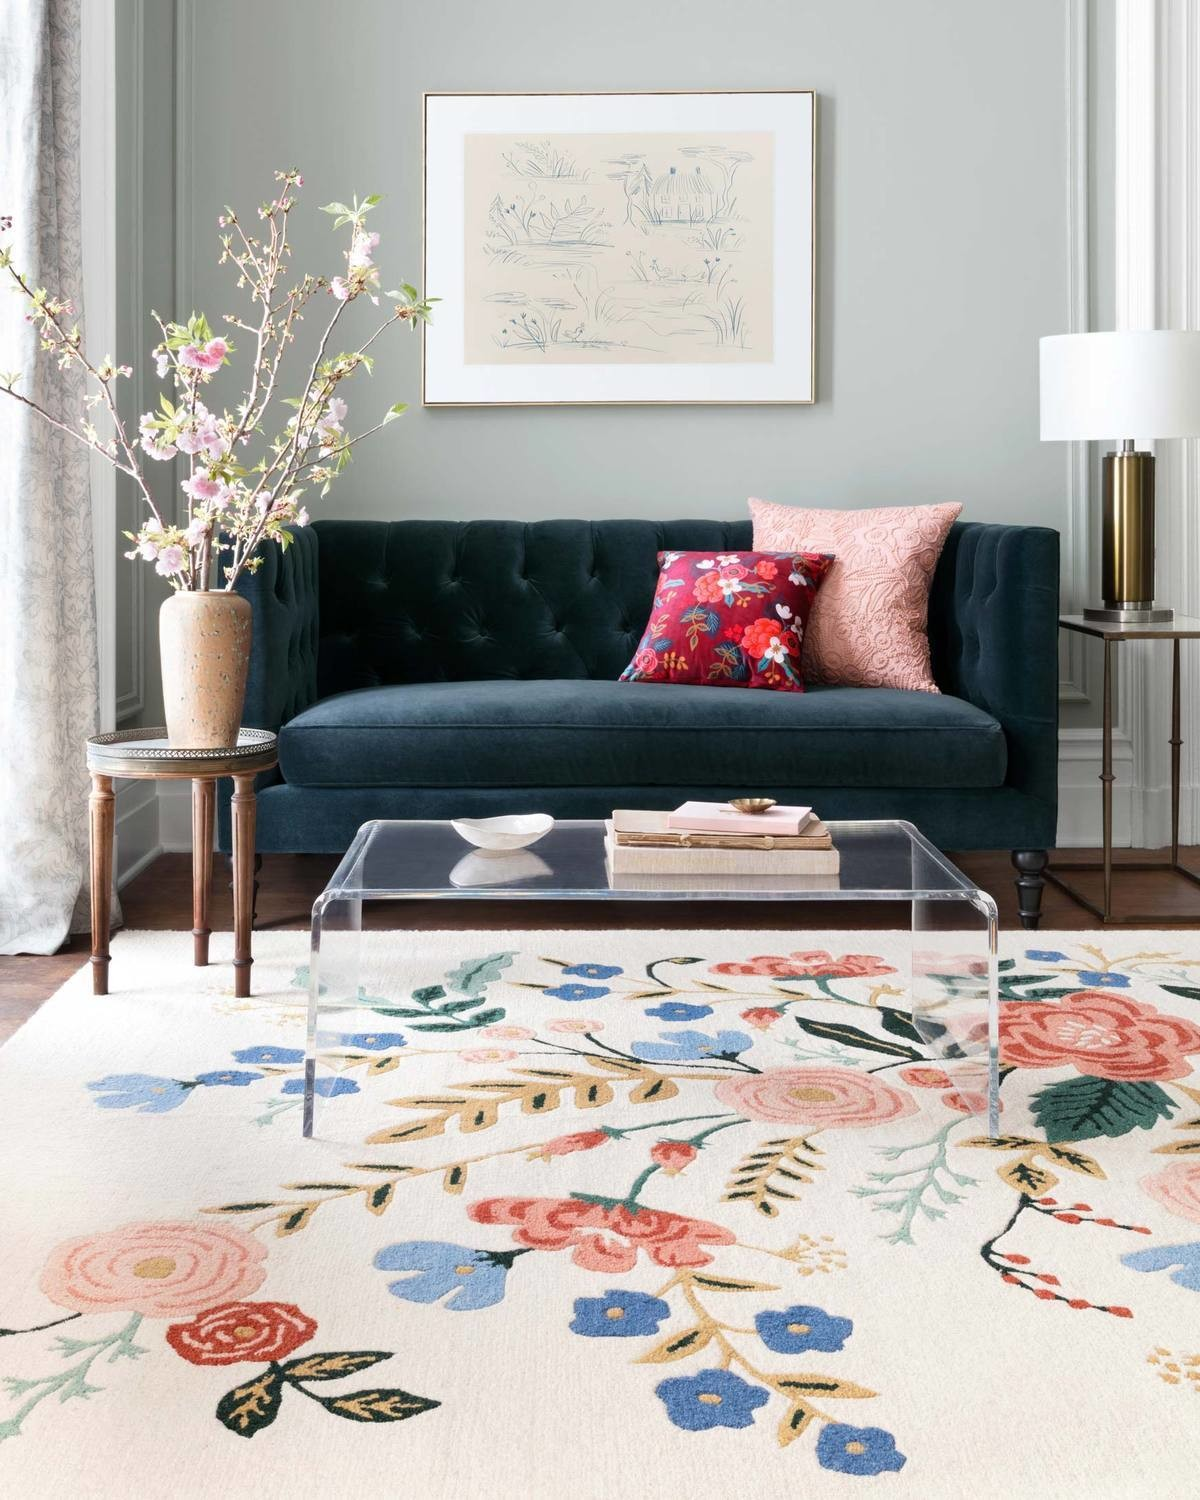 Les Fleurs Rug Collection by Rifle Paper